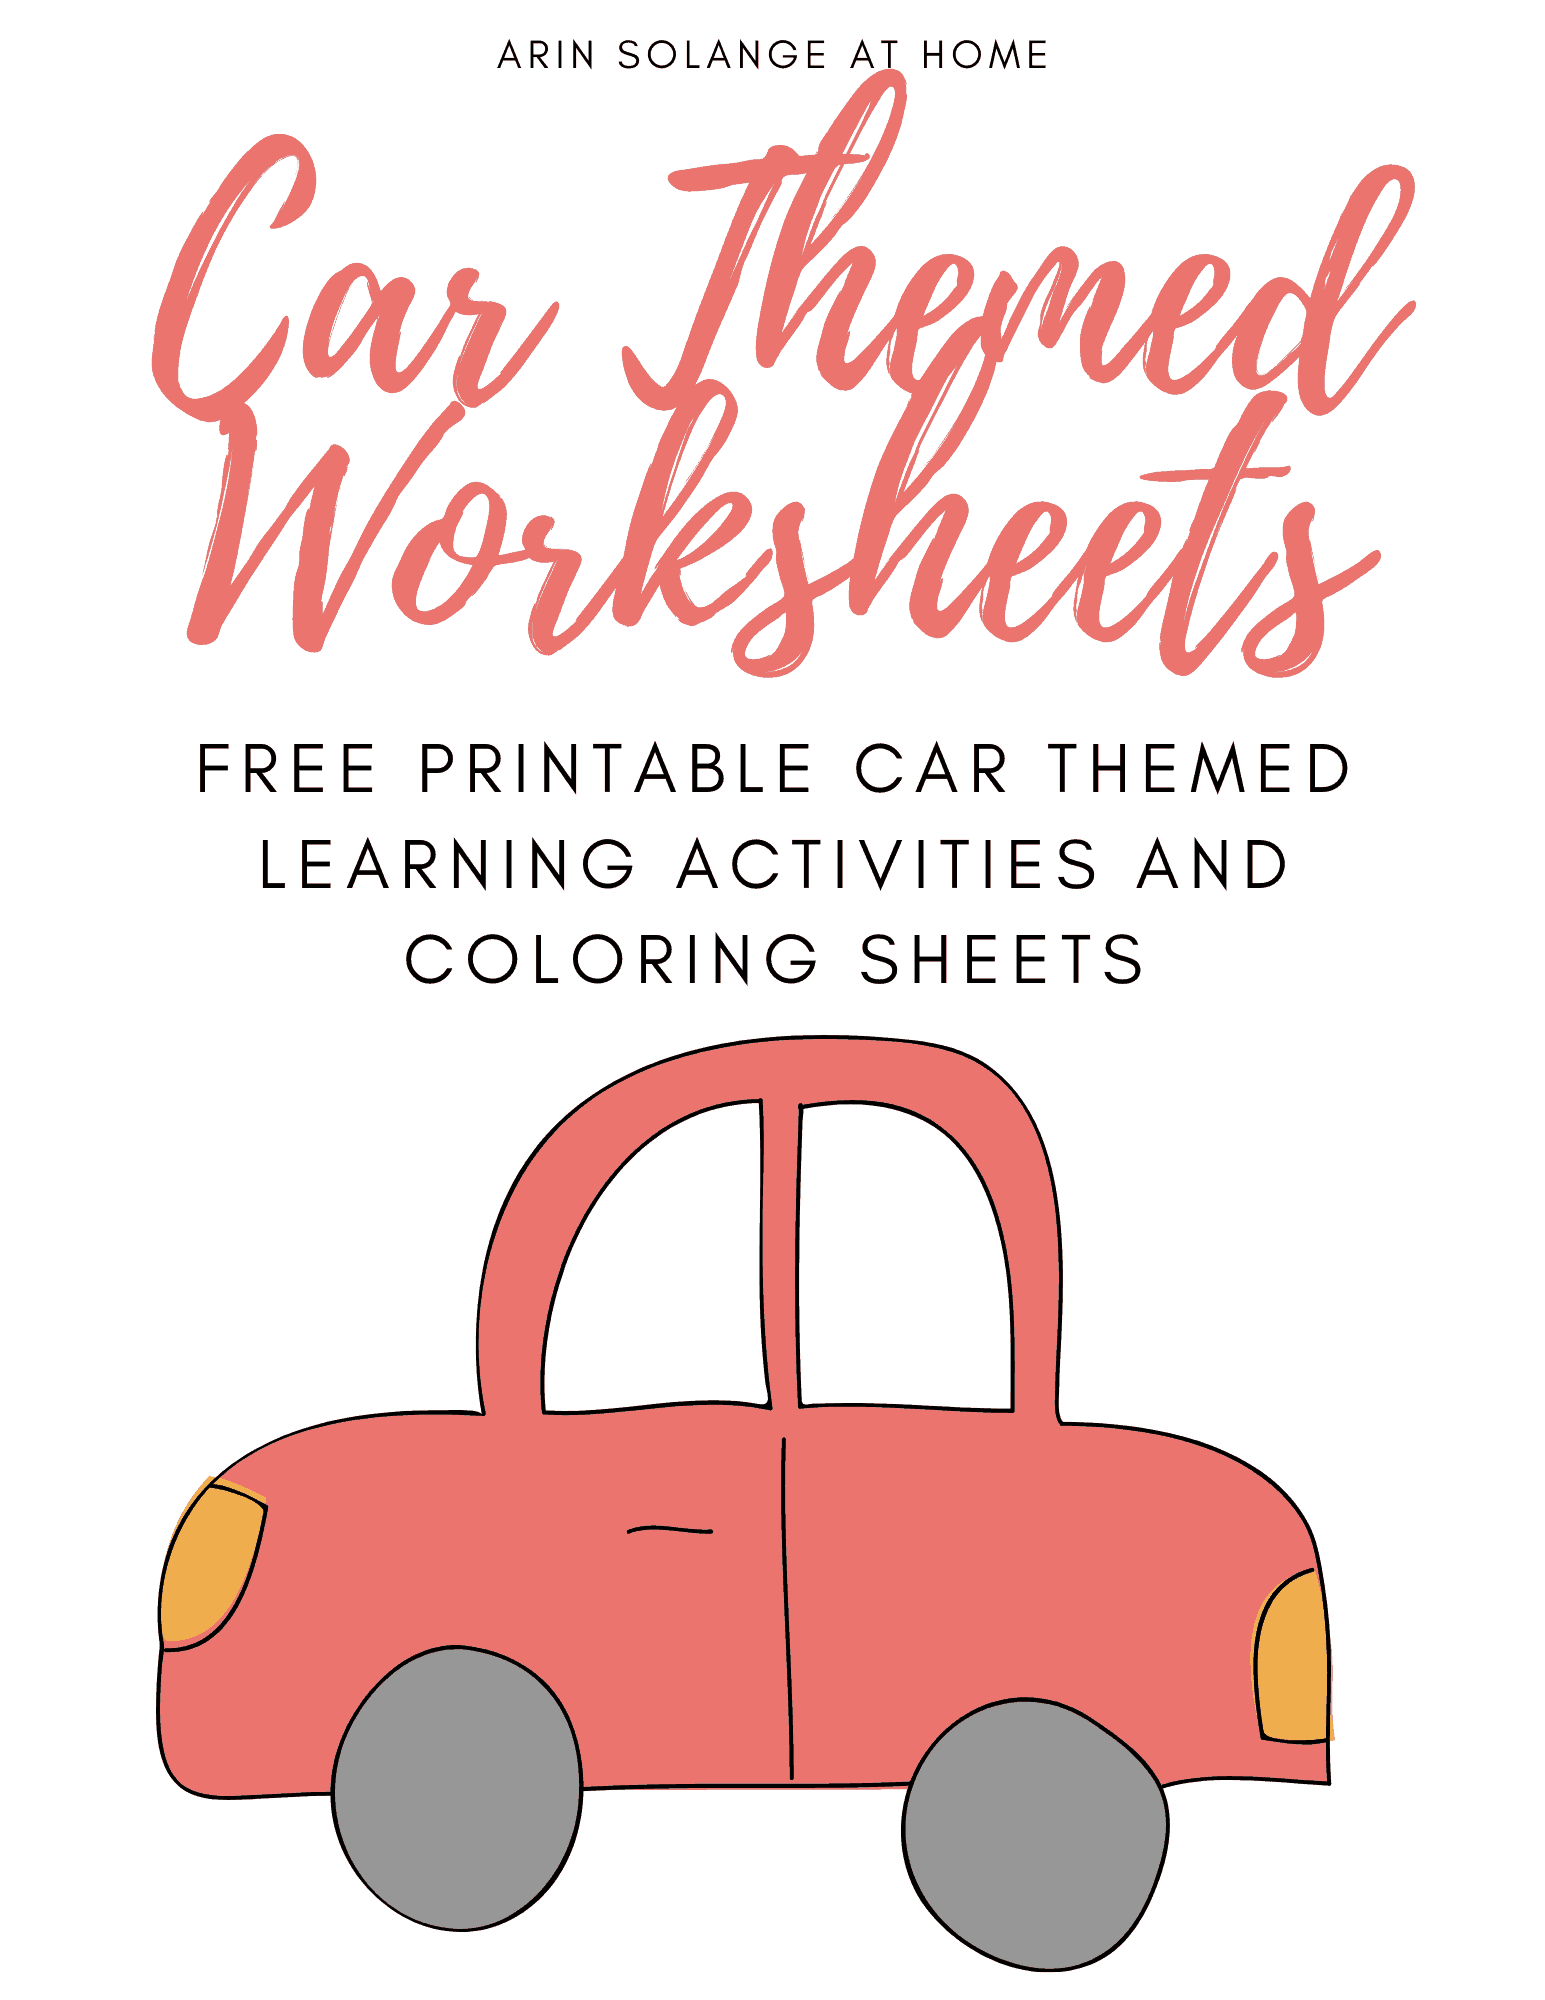 Free Printable Preschool Worksheets Car Themed In